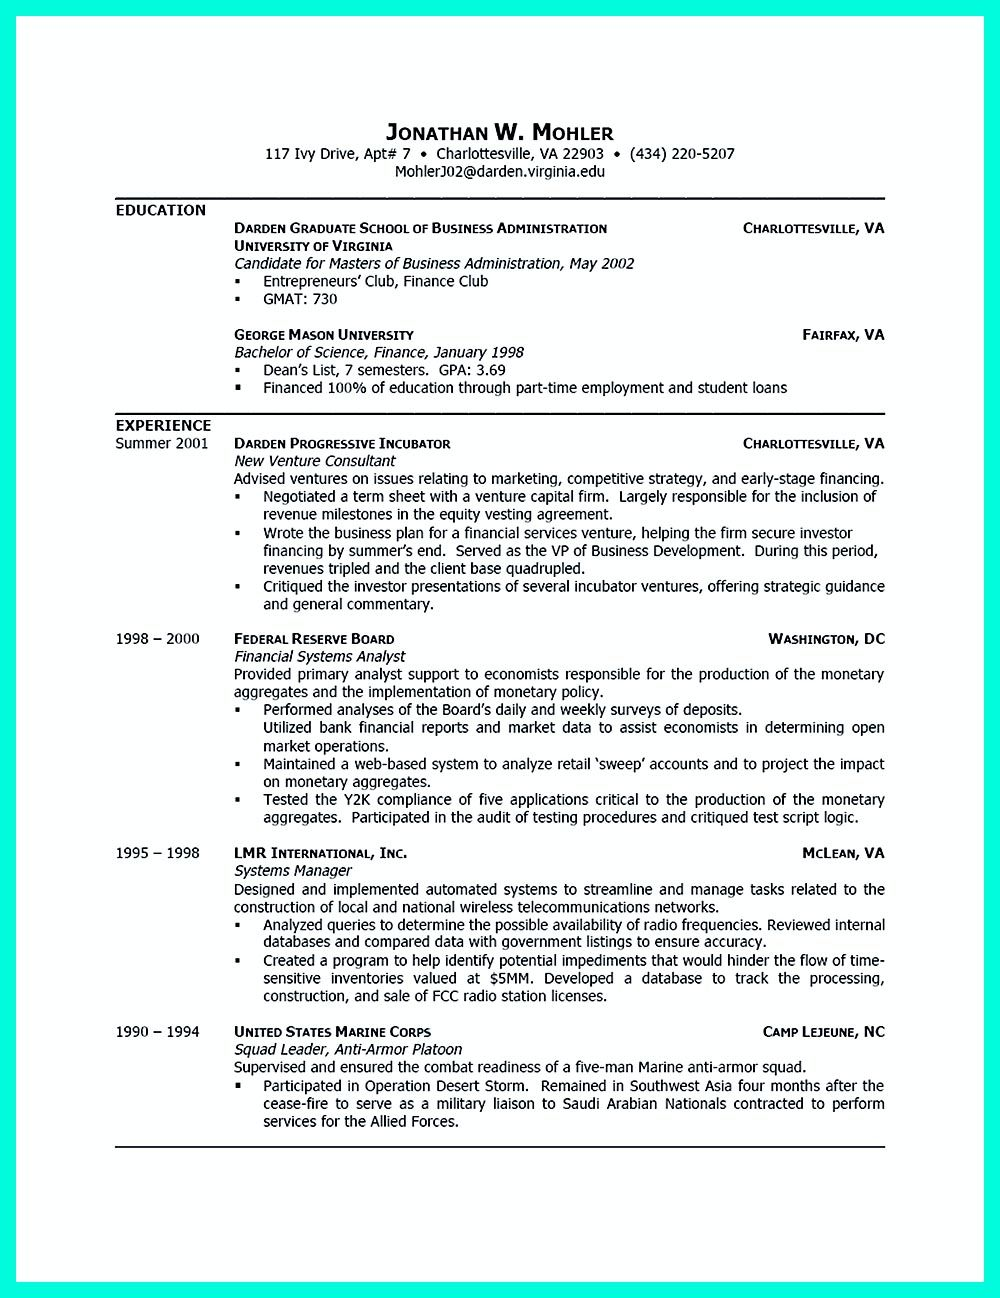 Resume Format College Student College Resume Is Designed For College Students Either With Or